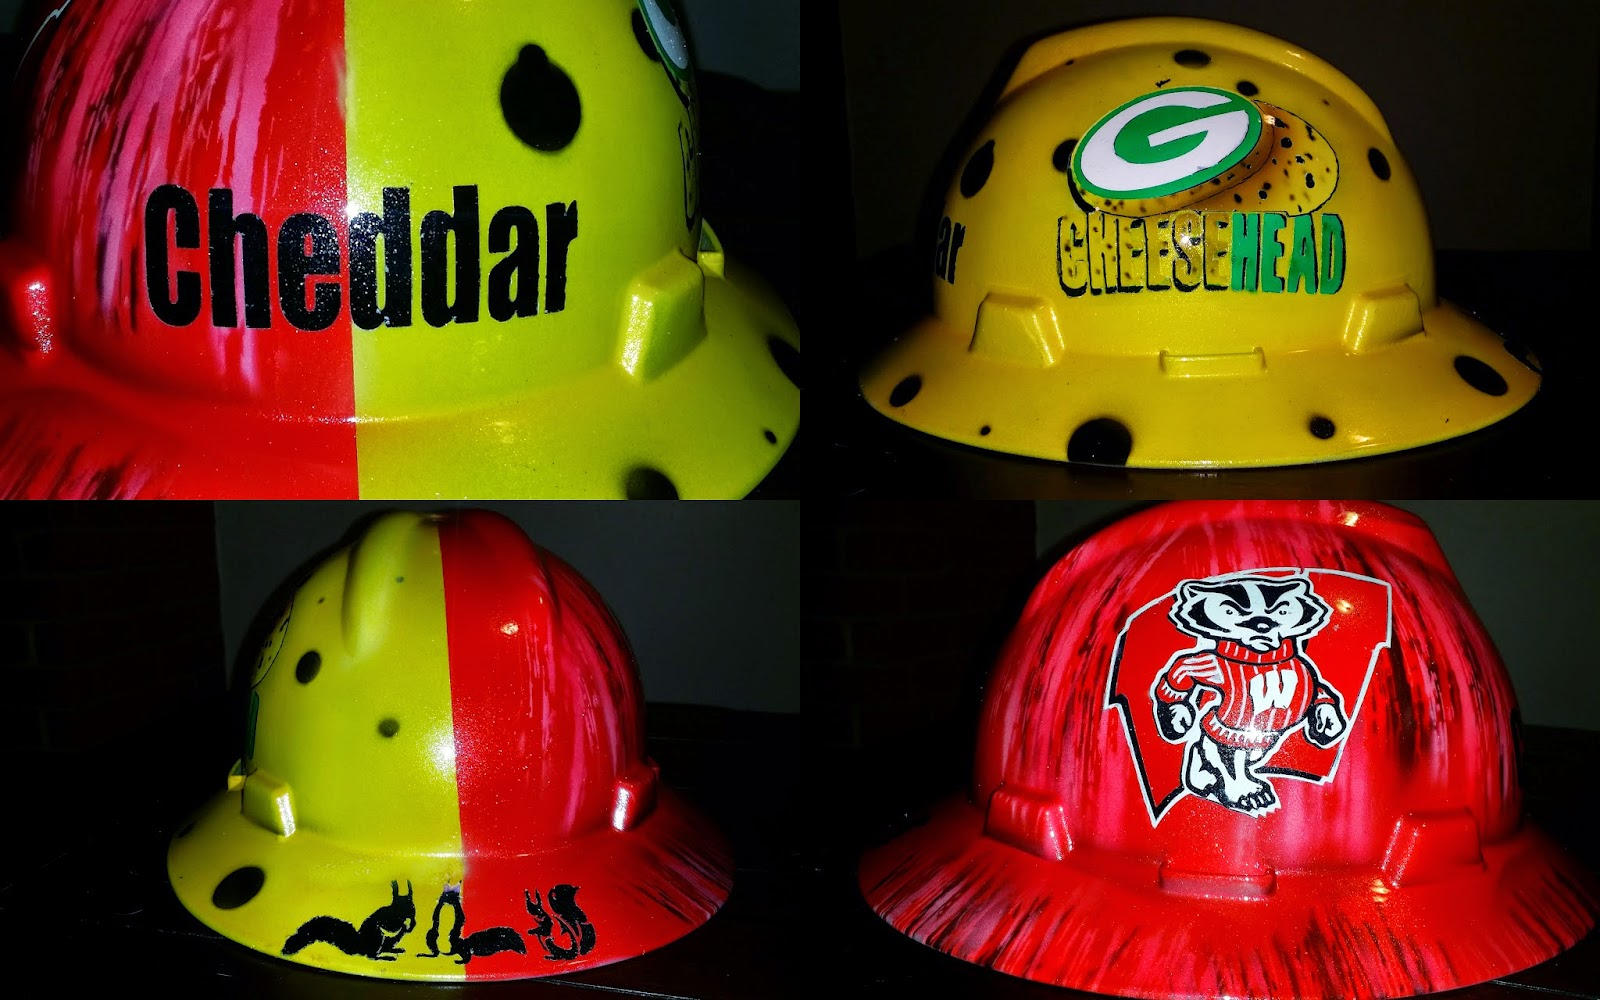 Greenbay cheesehead and Wisconsin Badger custom hard hat